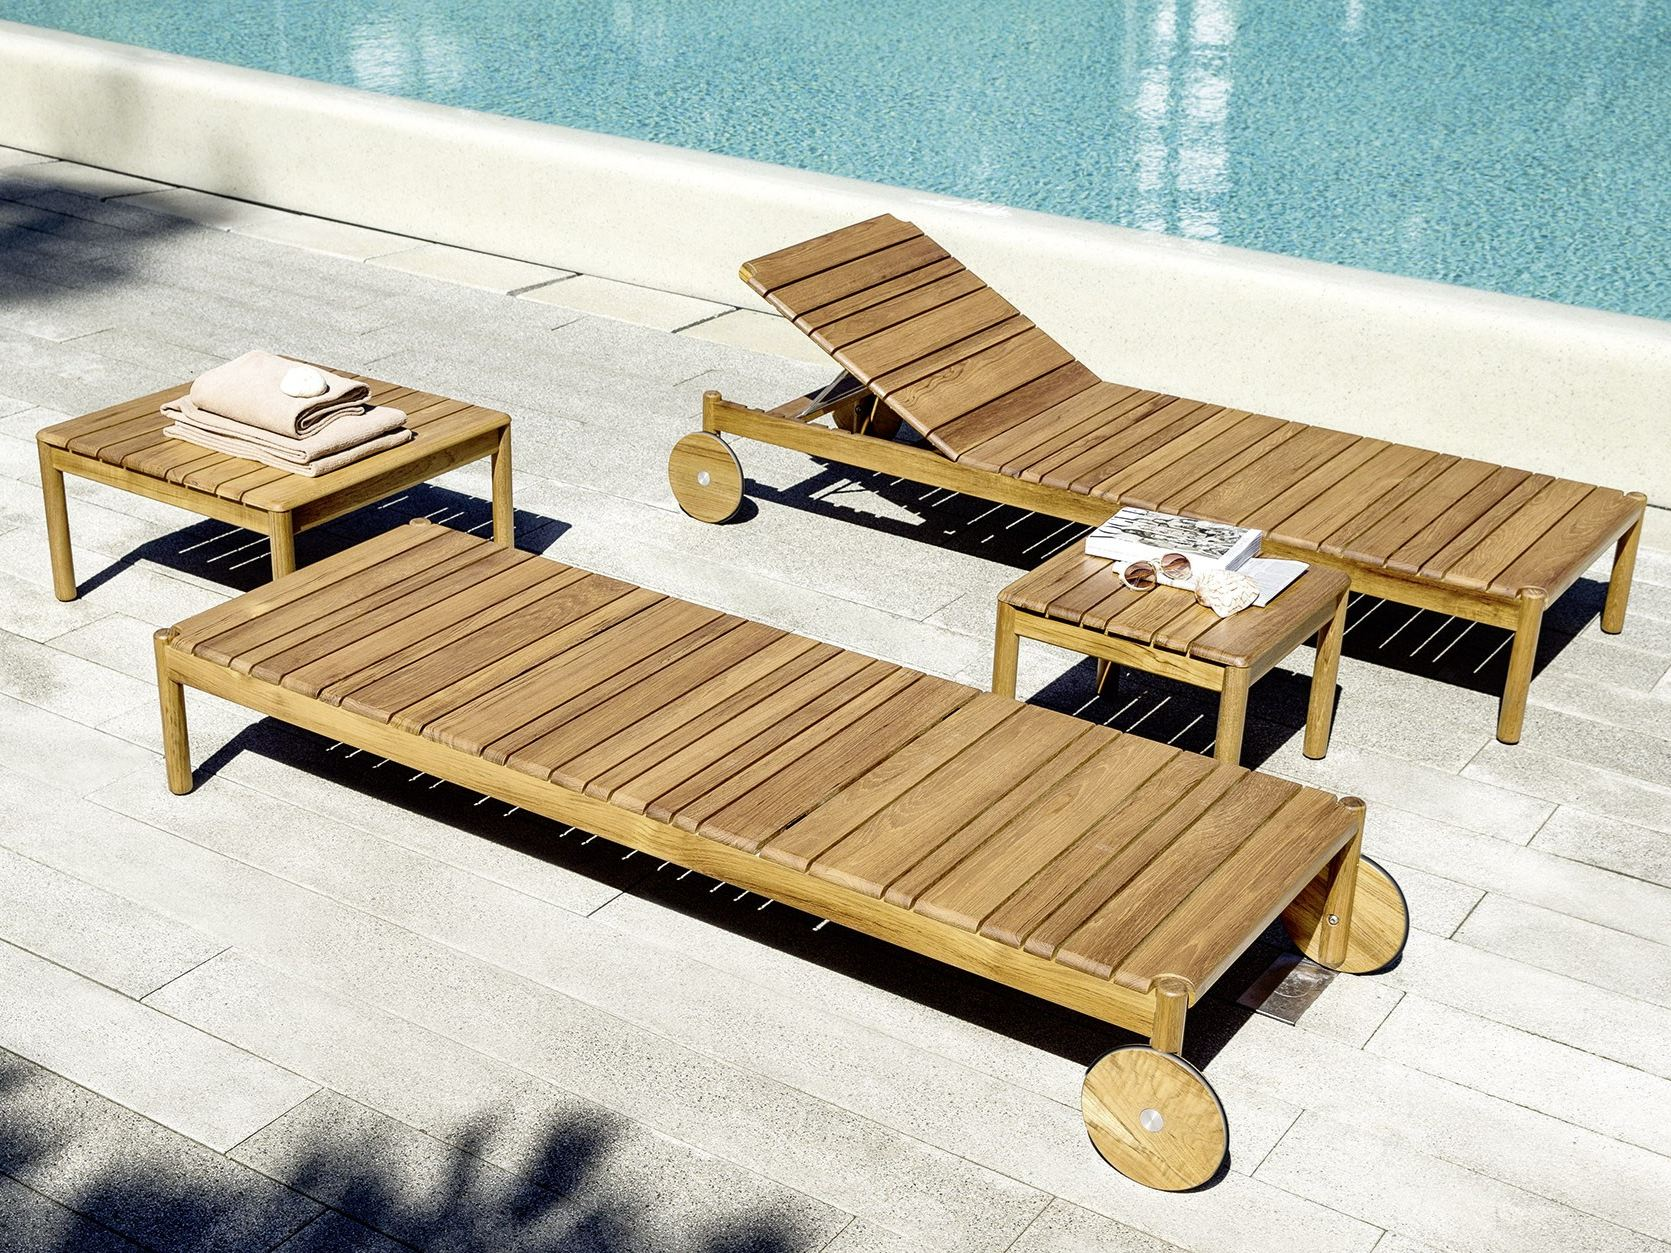 barcode garden daybed with casters by varaschin design alessandro dubini